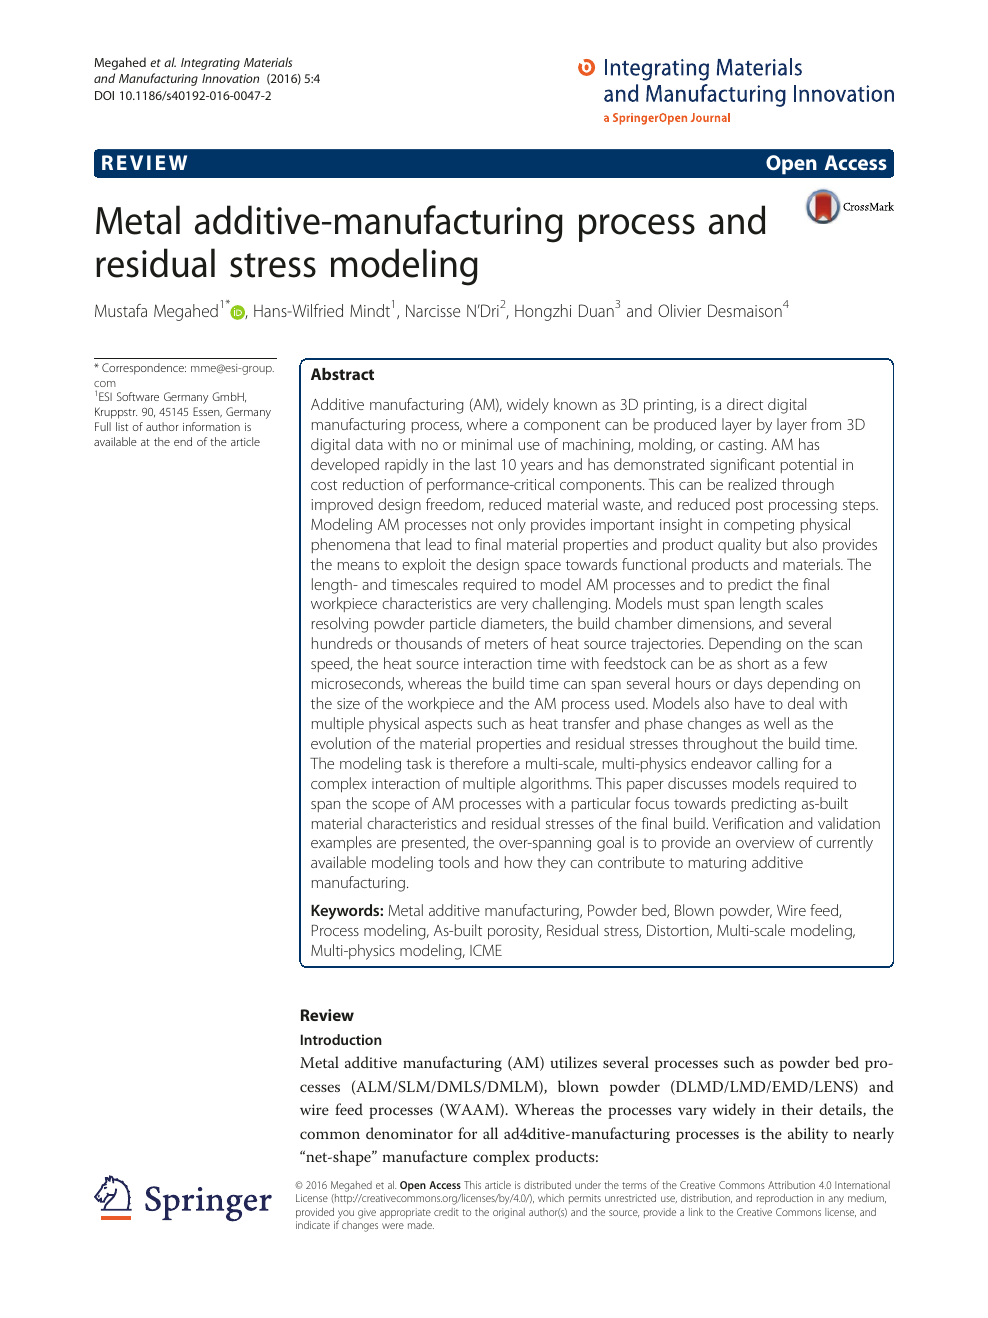 Metal additive-manufacturing process and residual stress